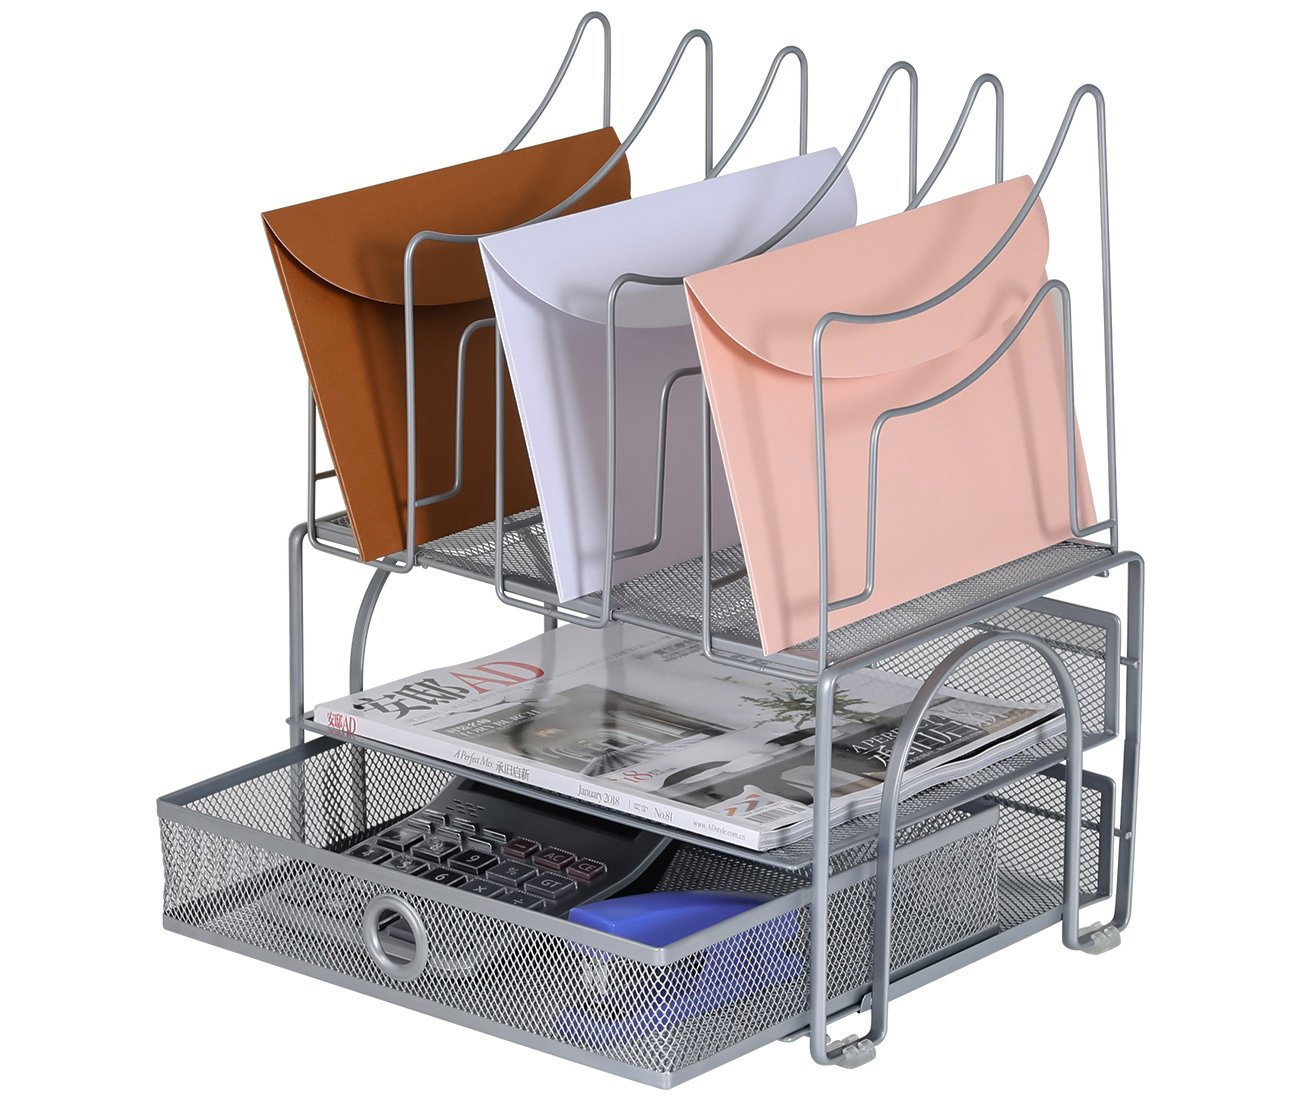 EasyPAG Mesh Desk Organizer with 5 Stacking Sorter Sections 2 Tier Letter Tray (Silver) Baike